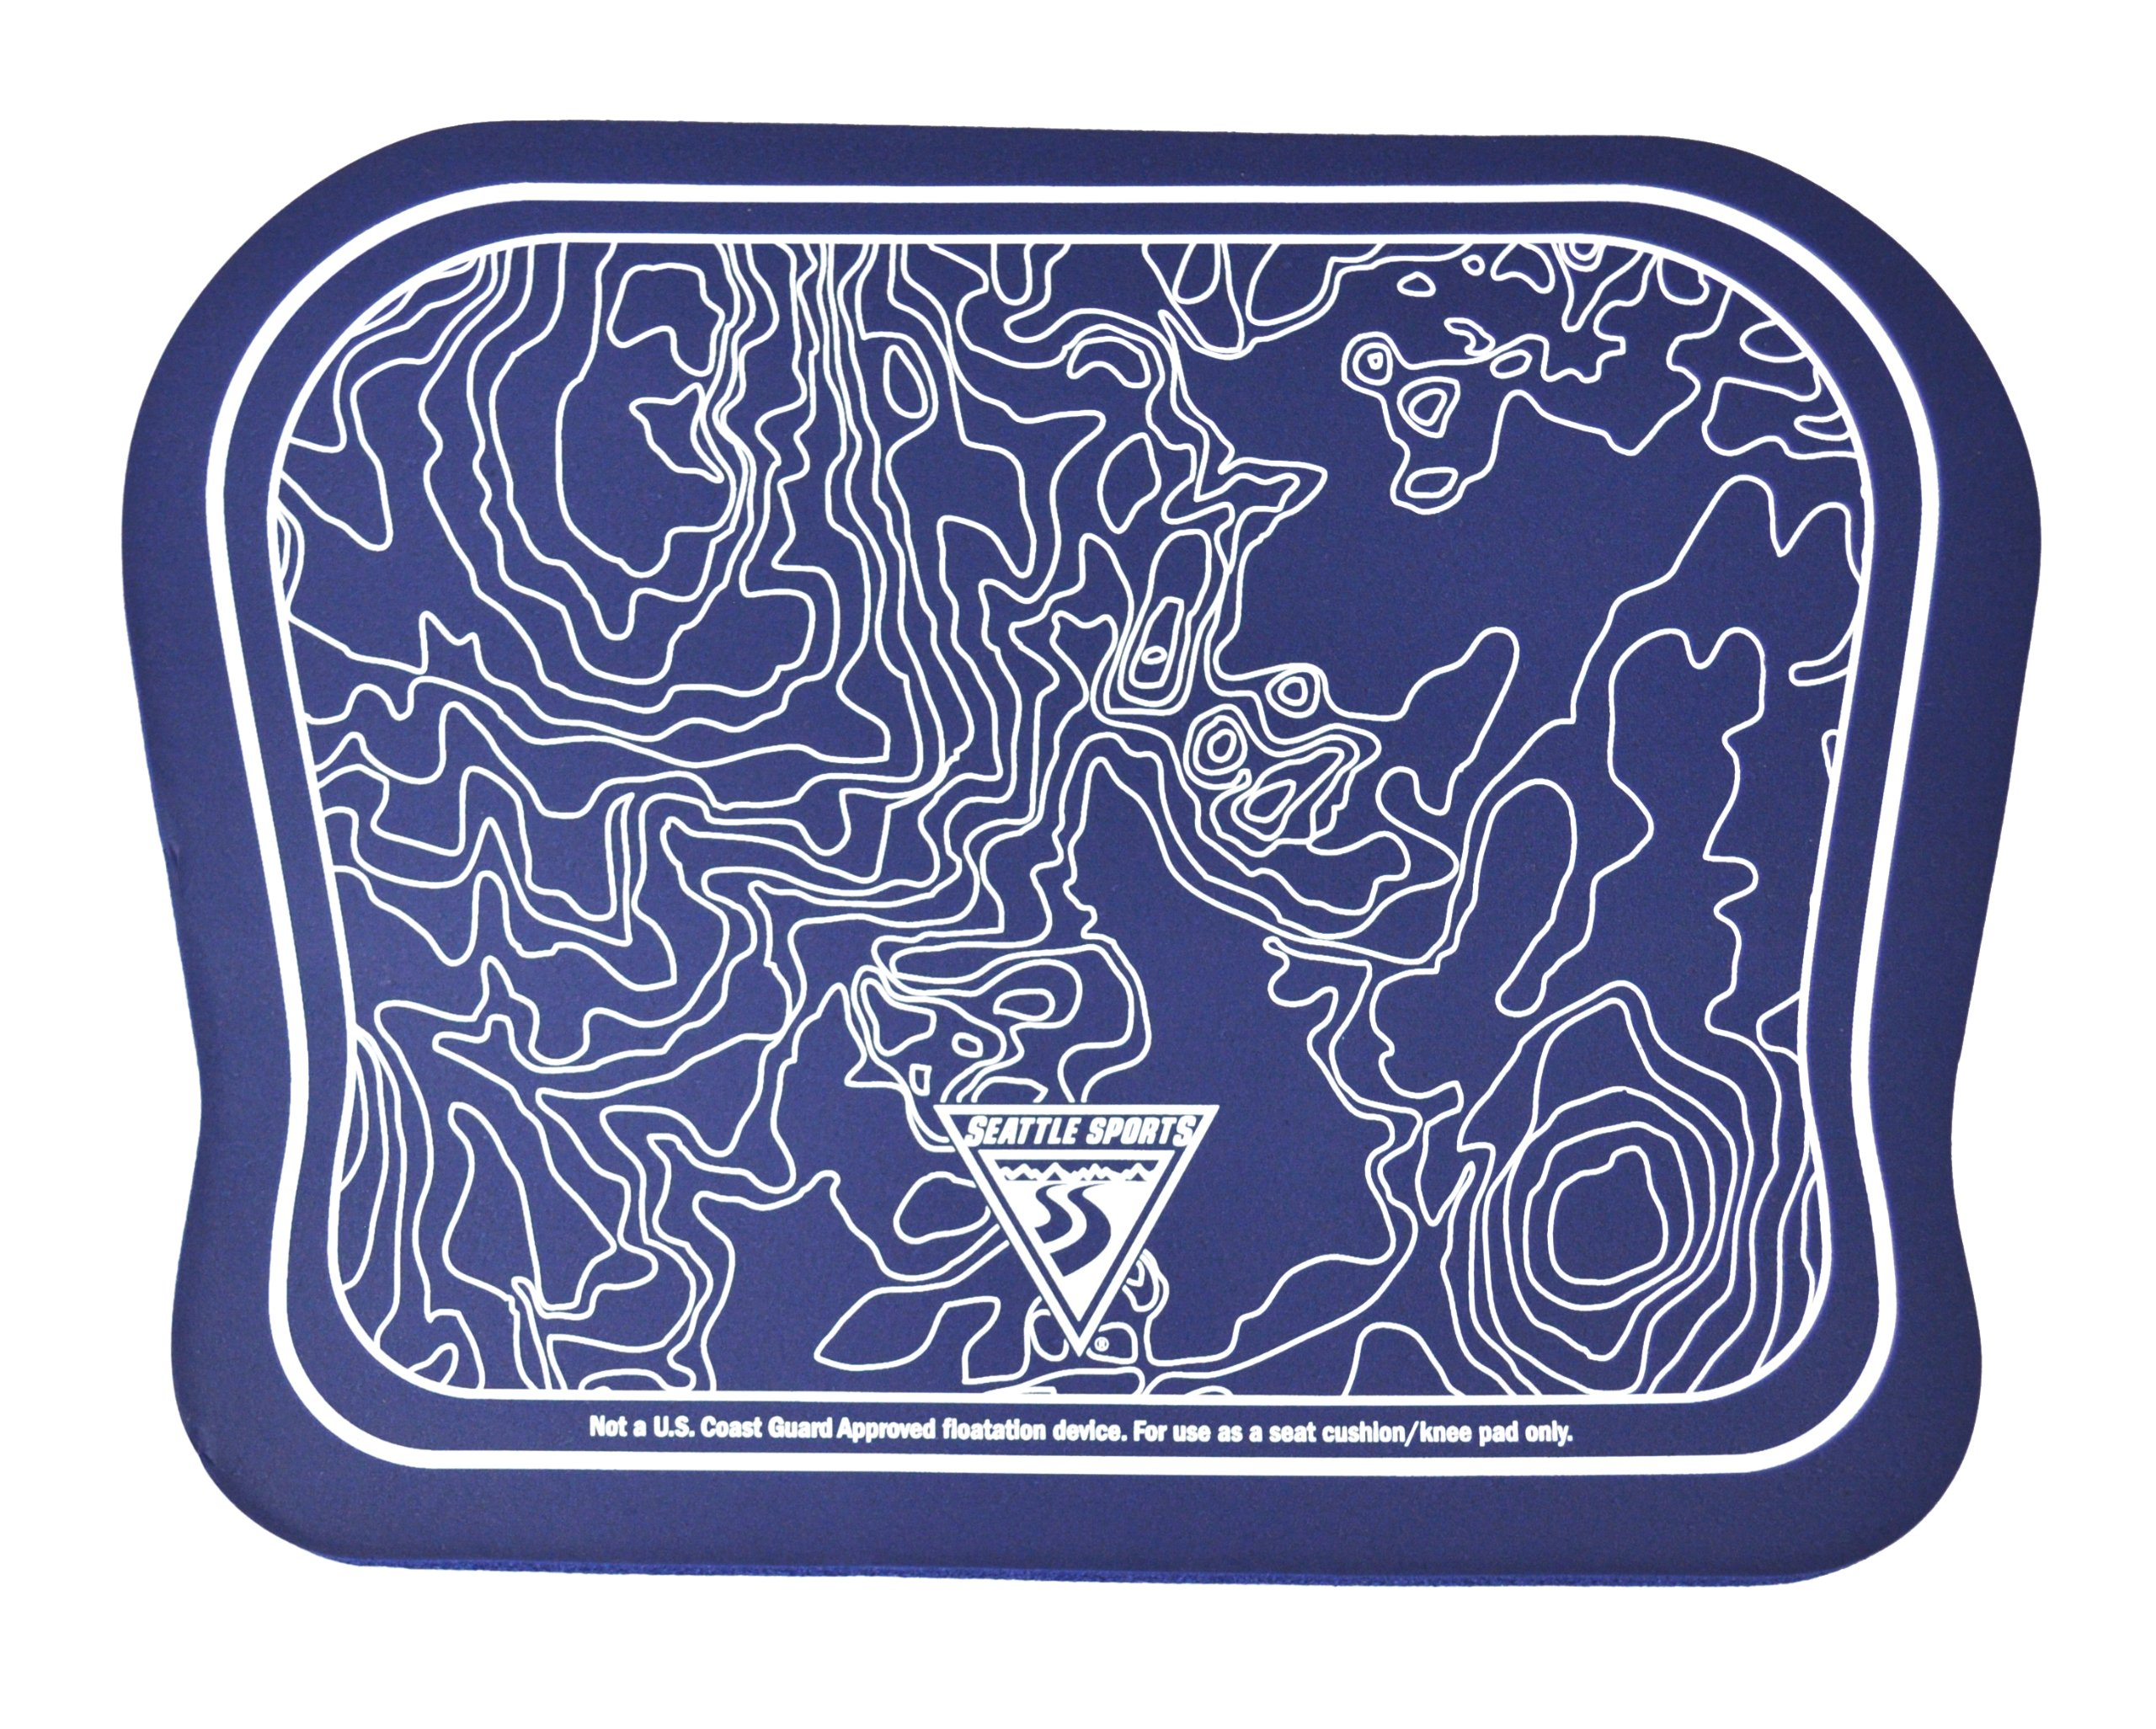 Seattle Sports Built U.S.A Paddler Pad Seat Cushion